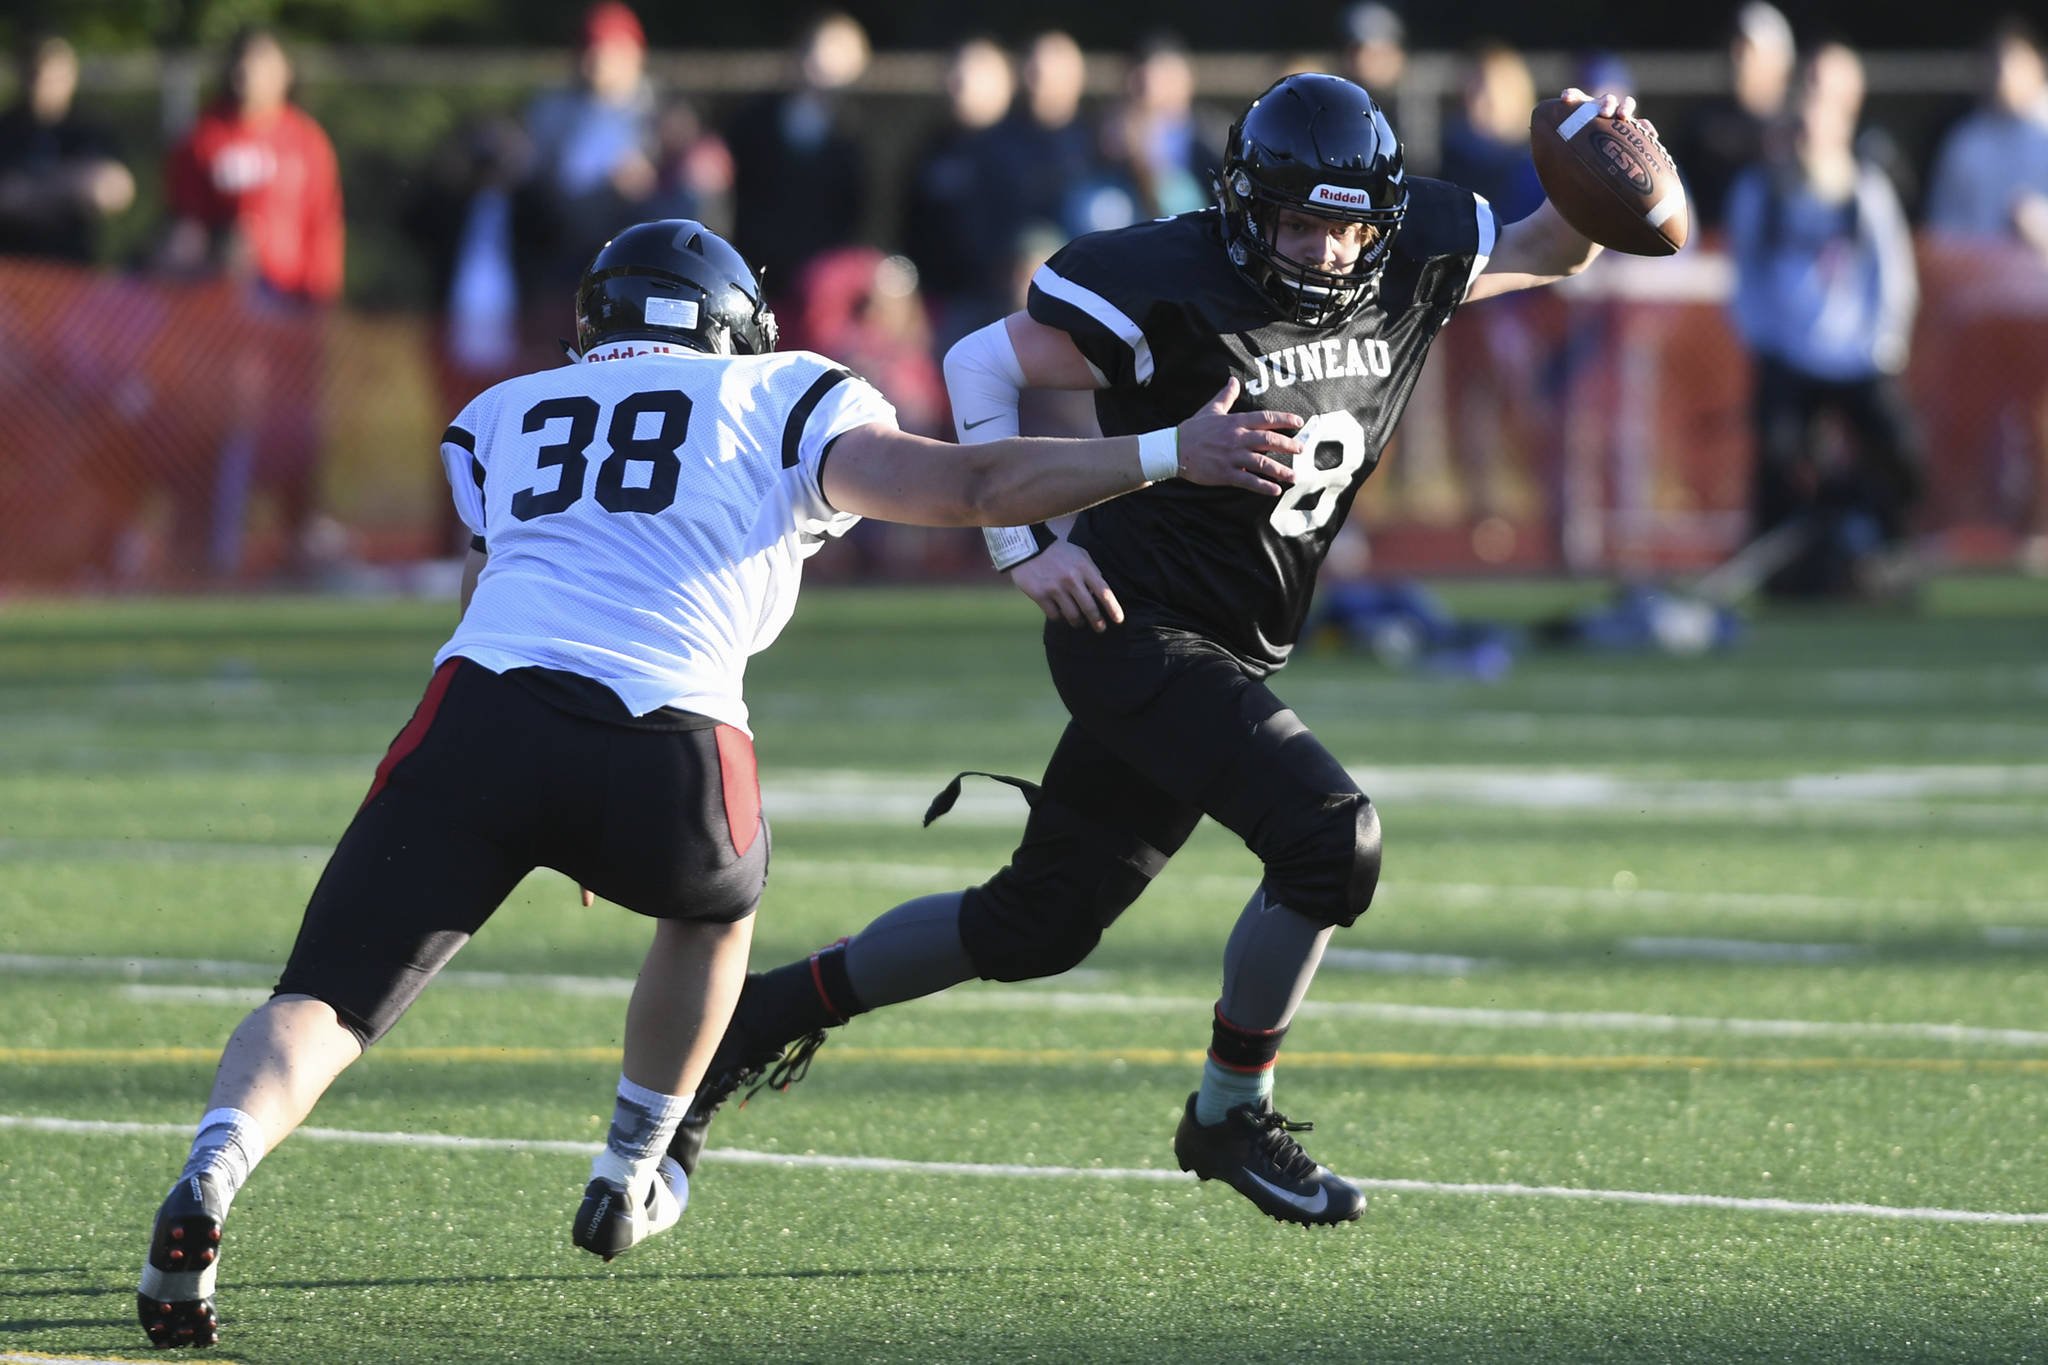 Legends' Stefan Jones, right, is pursued by Stars' Dylan Skrzynski in the Juneau Alumni Football Game with football players, dance team members and cheerleaders from Juneau-Douglas and Thunder Mountain High Schools at Adair-Kennedy Memorial Field on Friday, May 24, 2019. (Michael Penn | Juneau Empire)